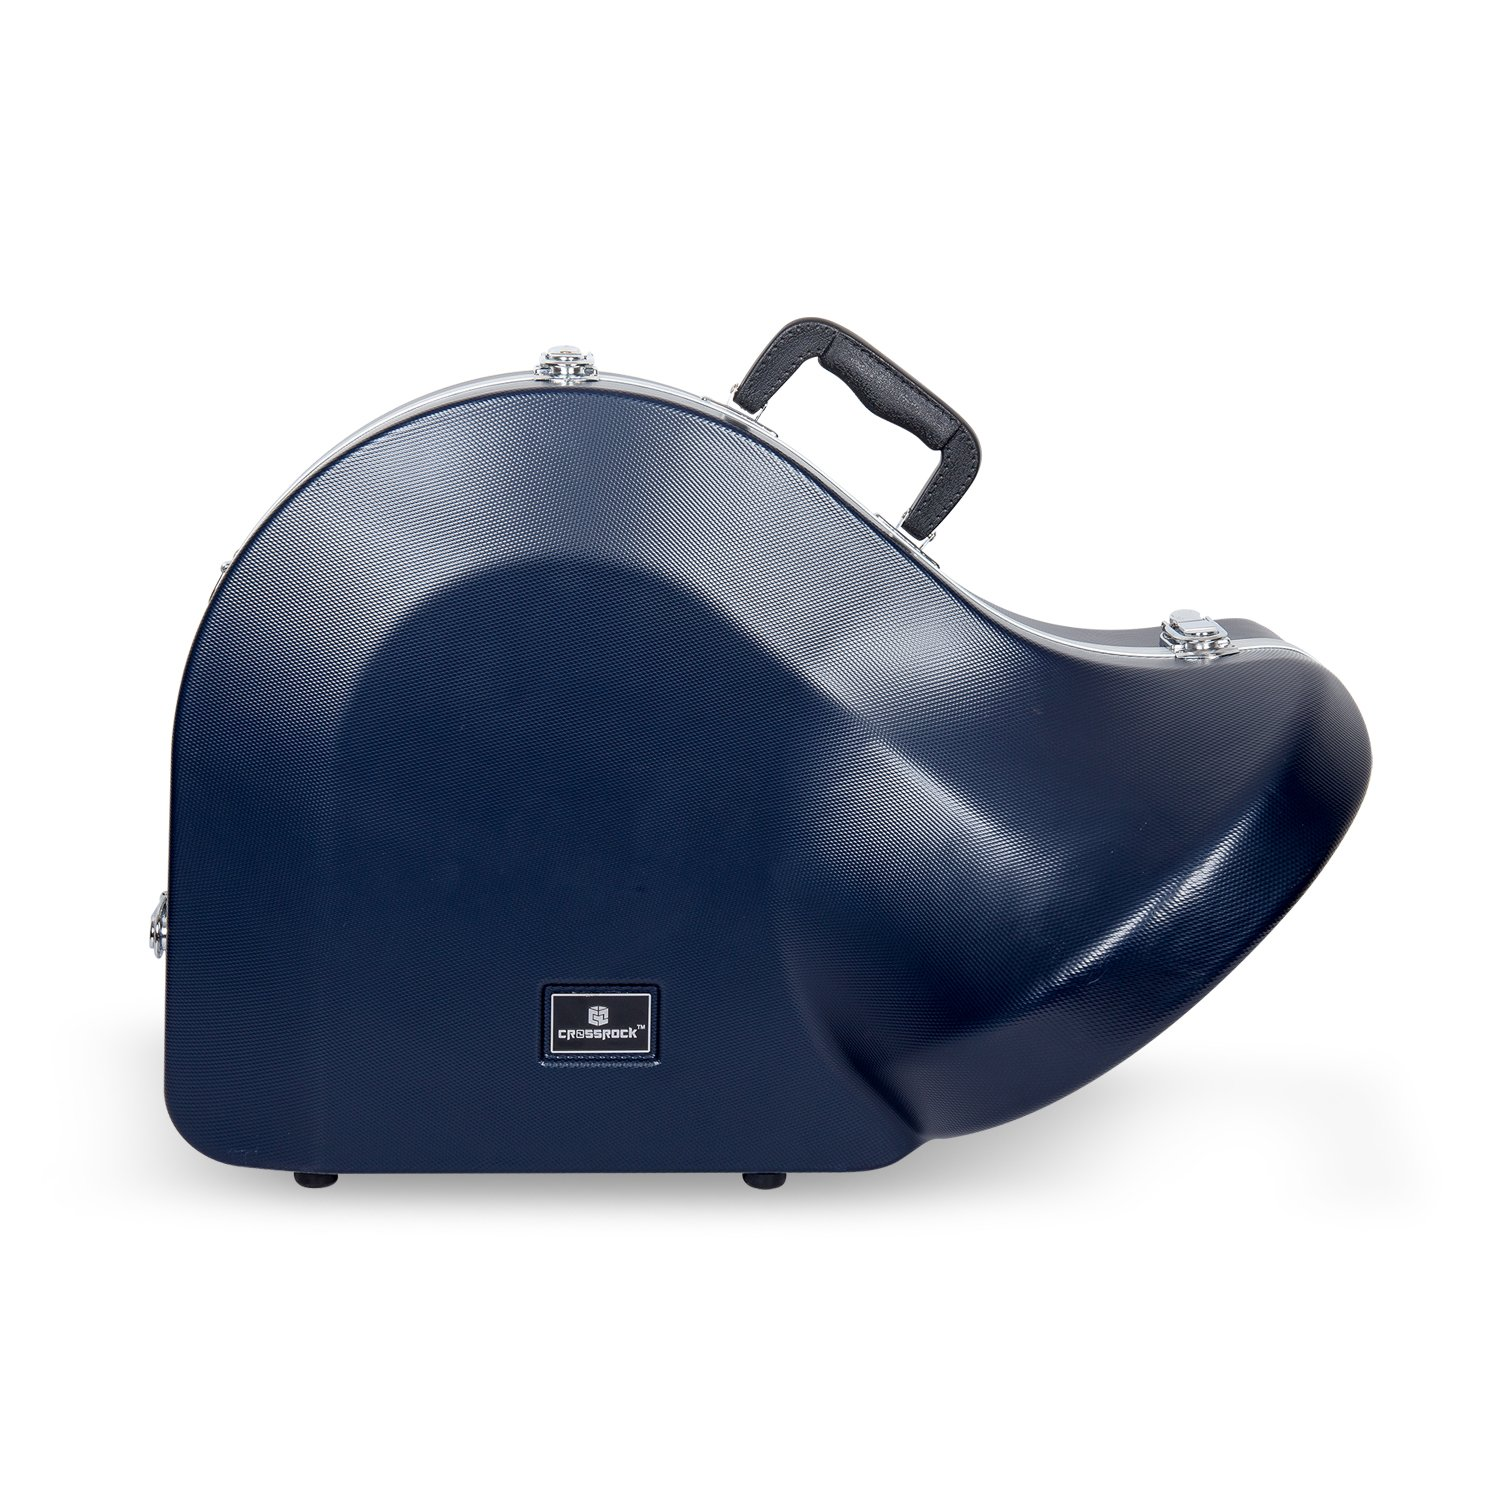 Crossrock CRA860FHBL French Horn, Contoured ABS Molded Hard Shell Case with Padded Strap in Blue